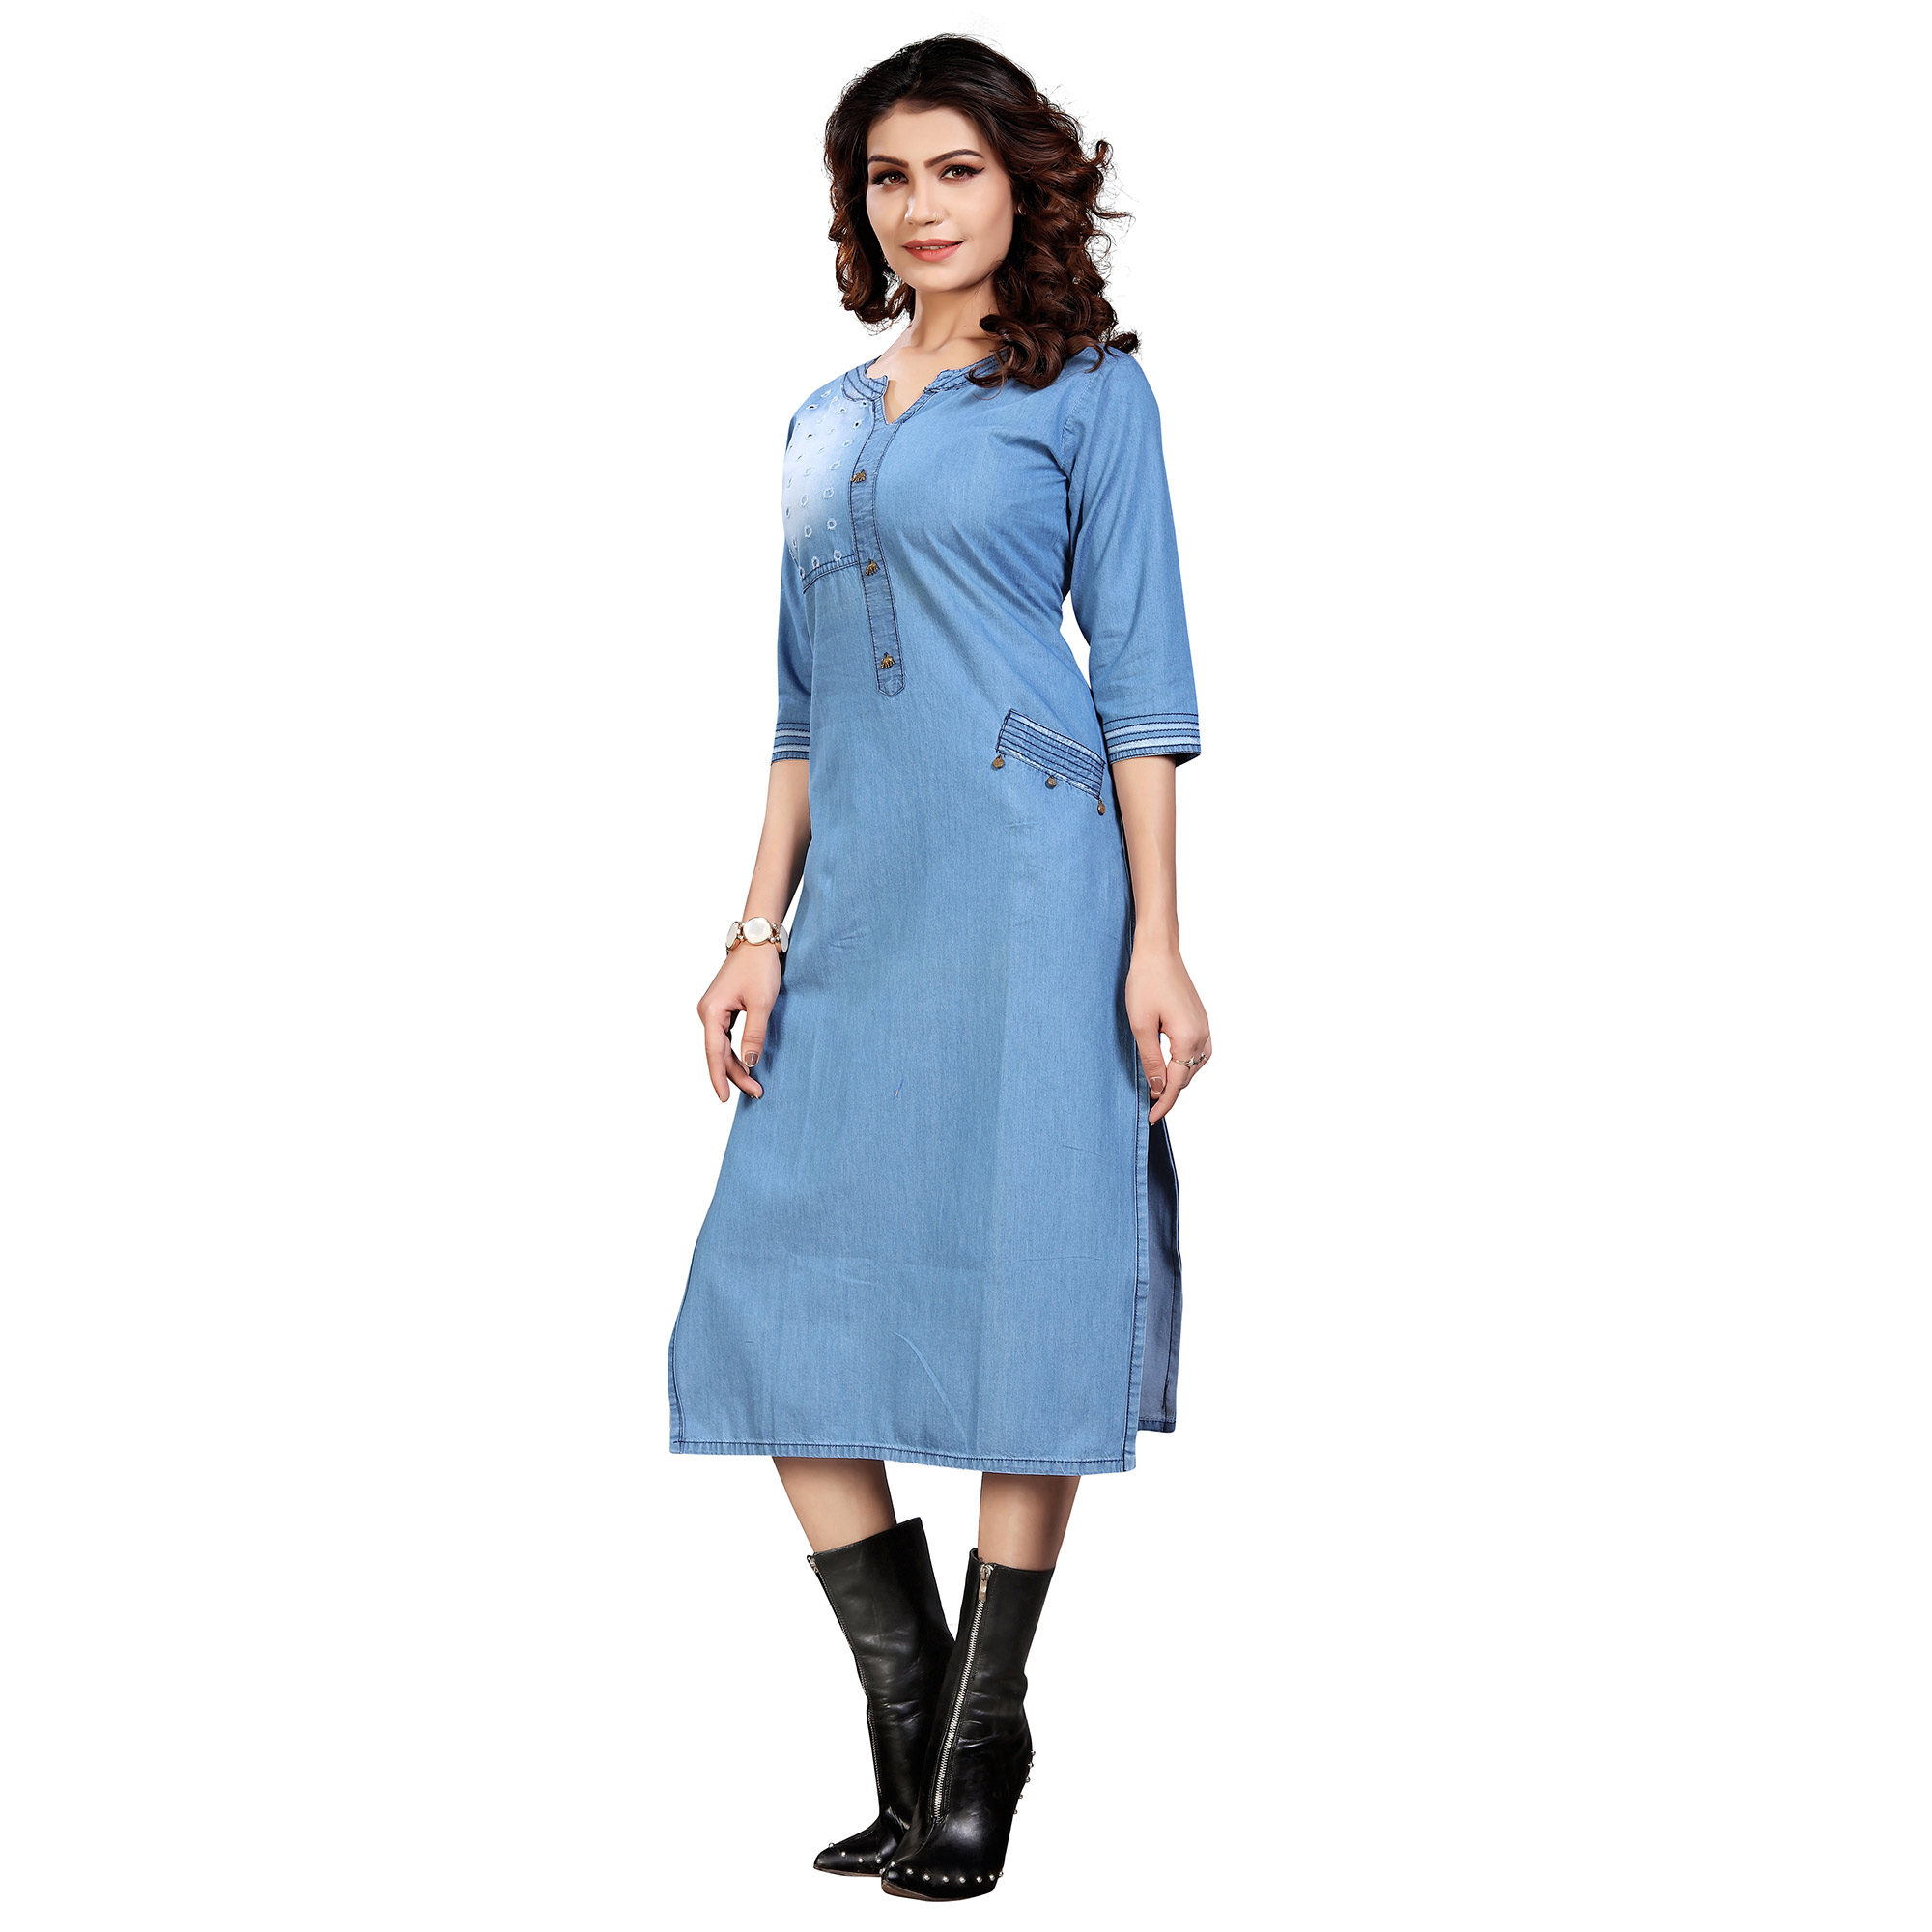 Lovely Steel Blue Colored Casual Embroidered Denim Style Cotton Kurti